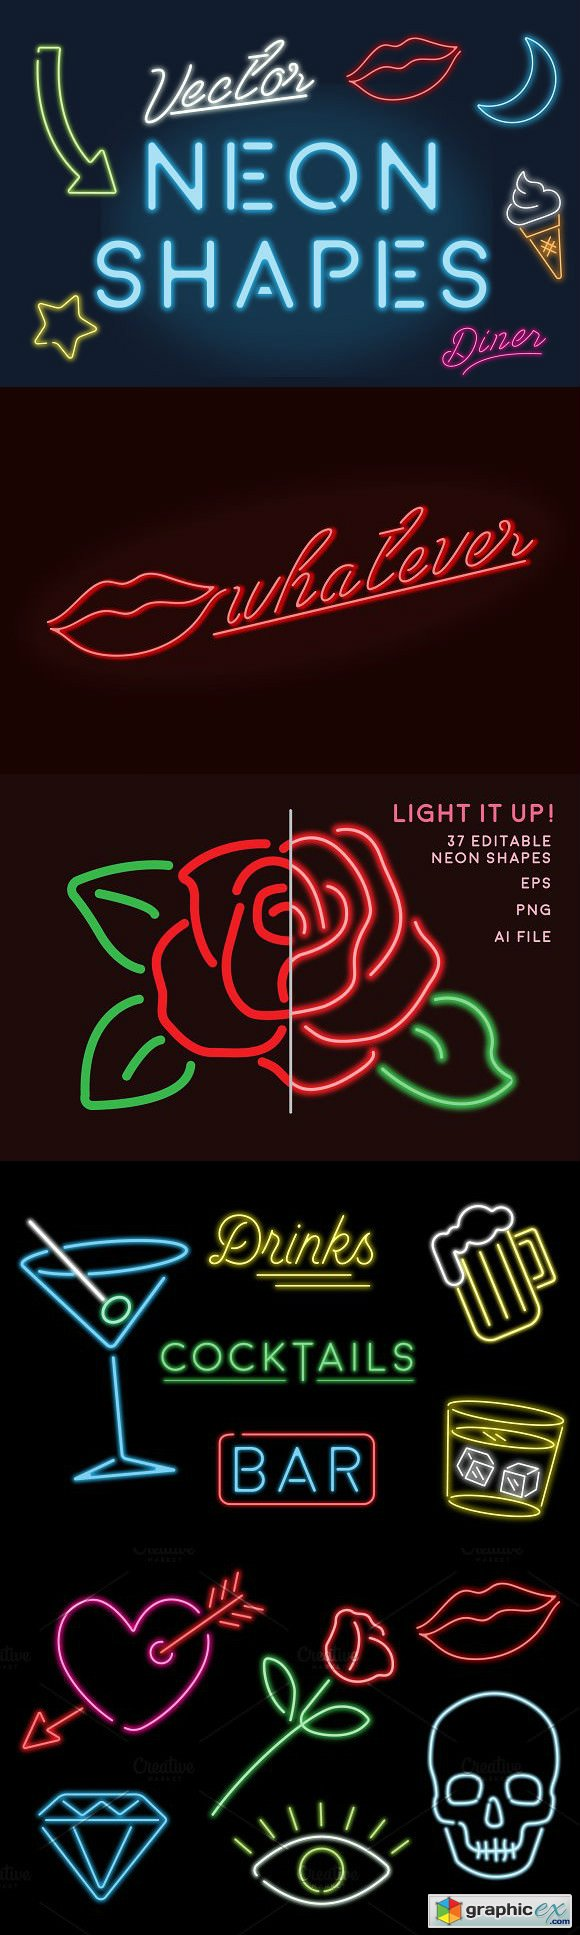 Neon Sign Shapes Vector Pack